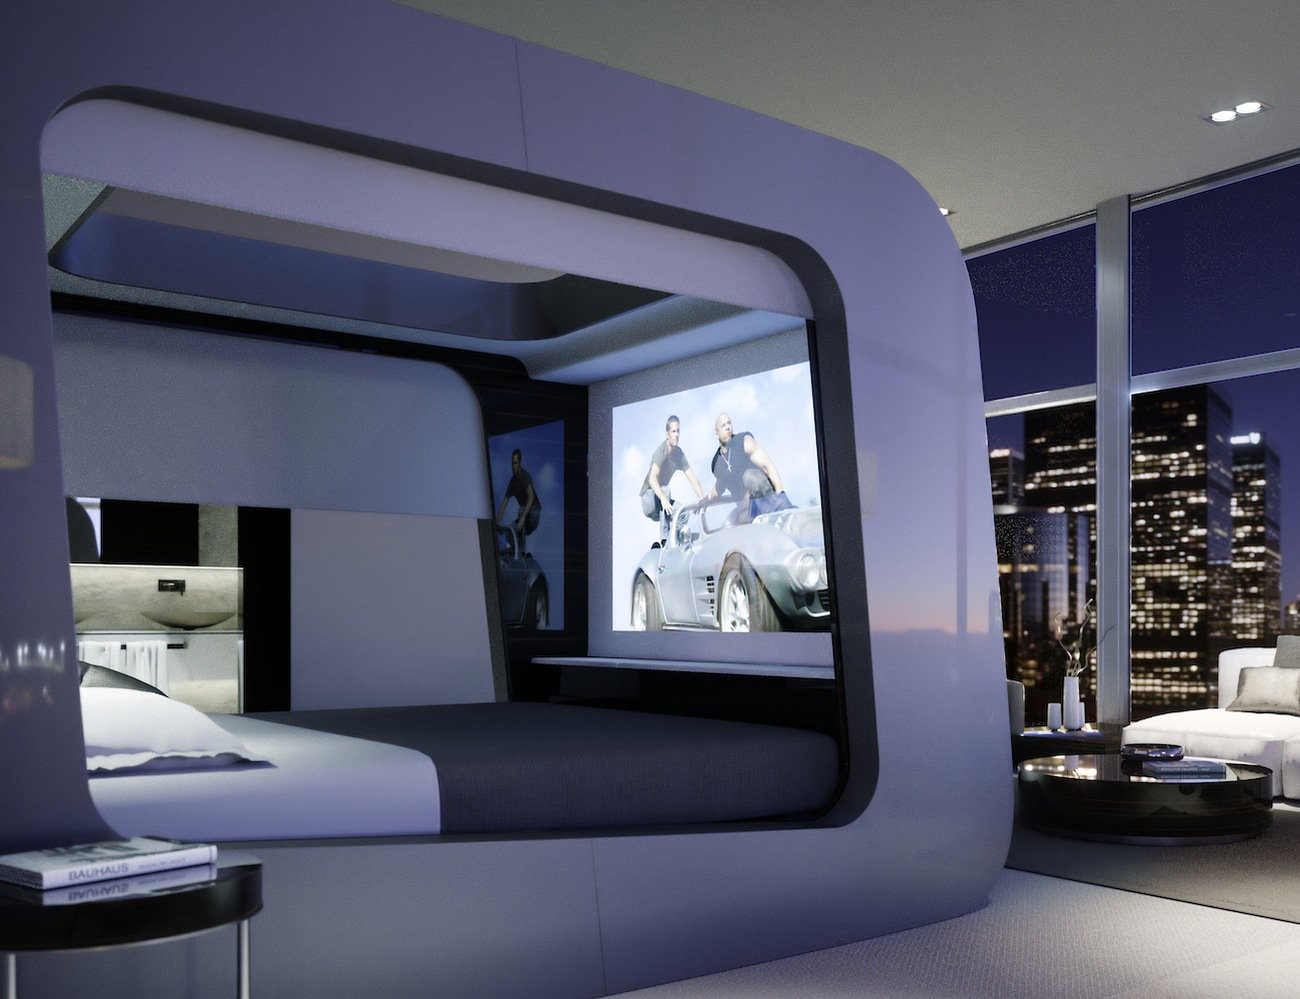 Thinking of buying a smart bed? Here's what you need to know - Hican 01